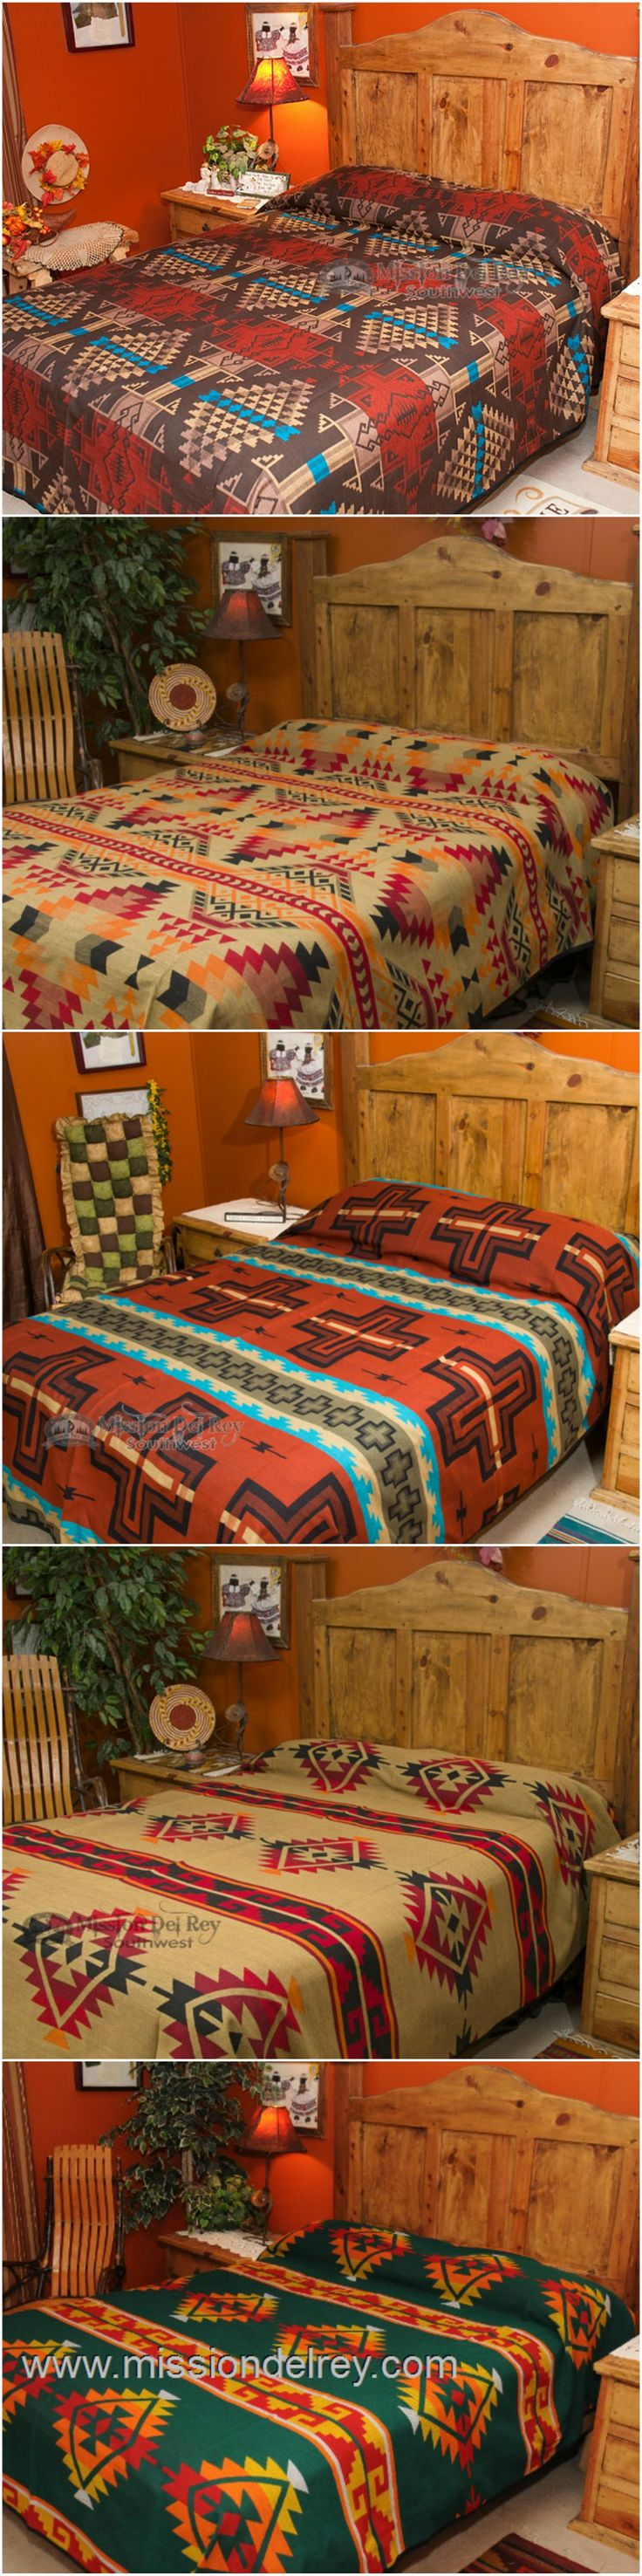 Brown and orange bedding - Southwestern Bedspreads Comforter Sets And Western Bed Spreads With Native Designs Are Perfect Southwest Decor